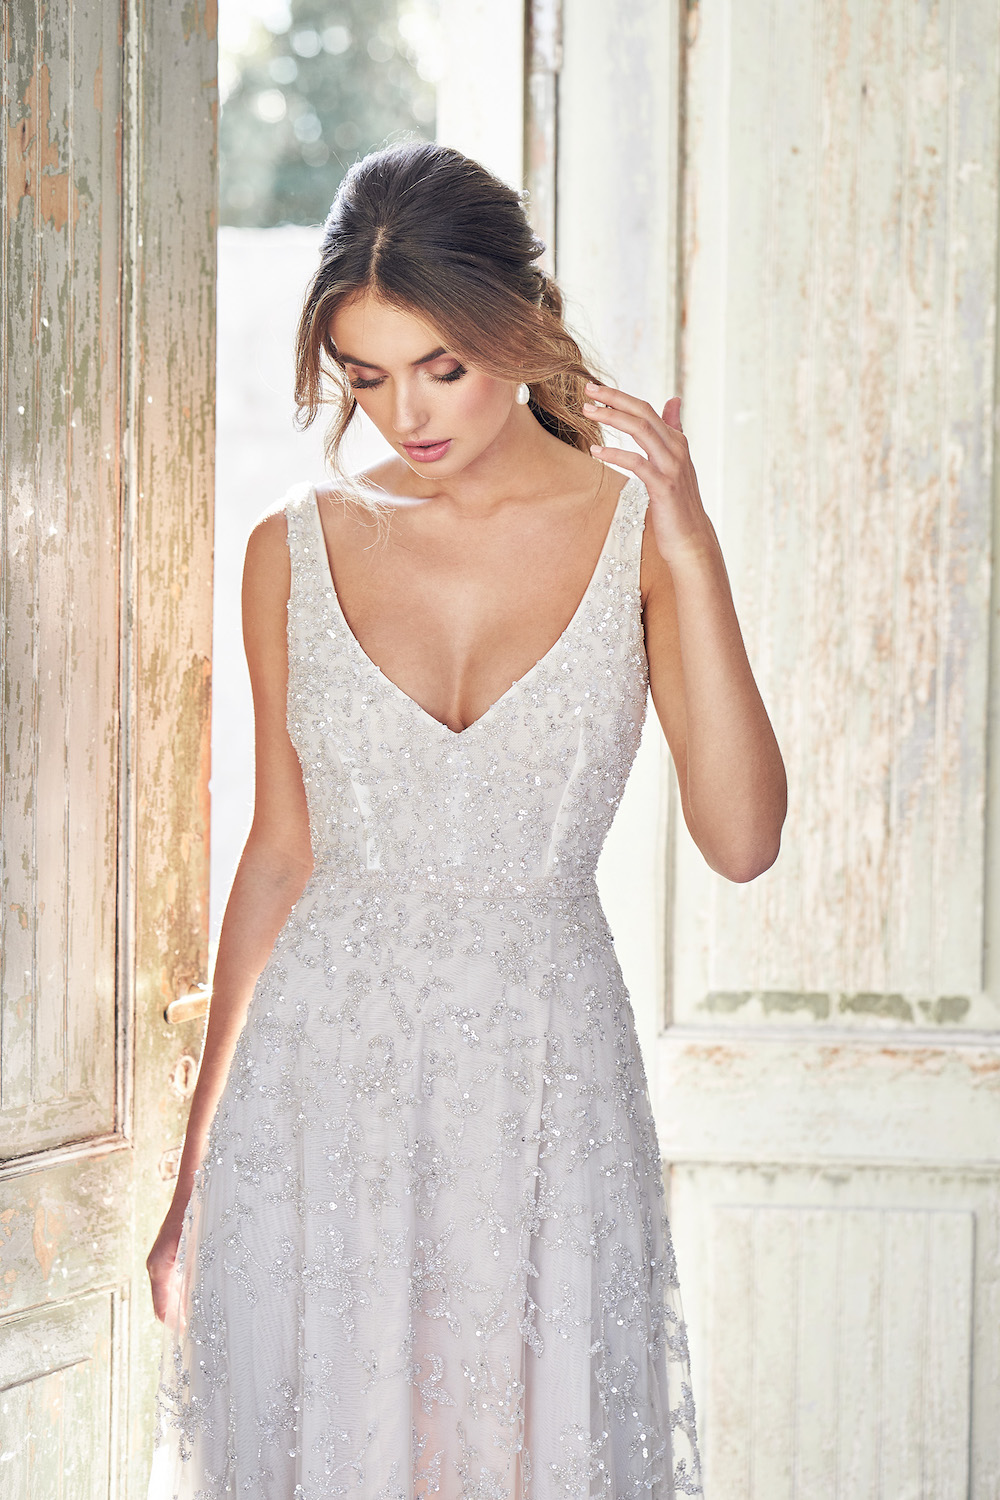 Eden Empress Dress | Anna Campbell Lumiere Collection | LOVE FIND CO. Bridal Directory